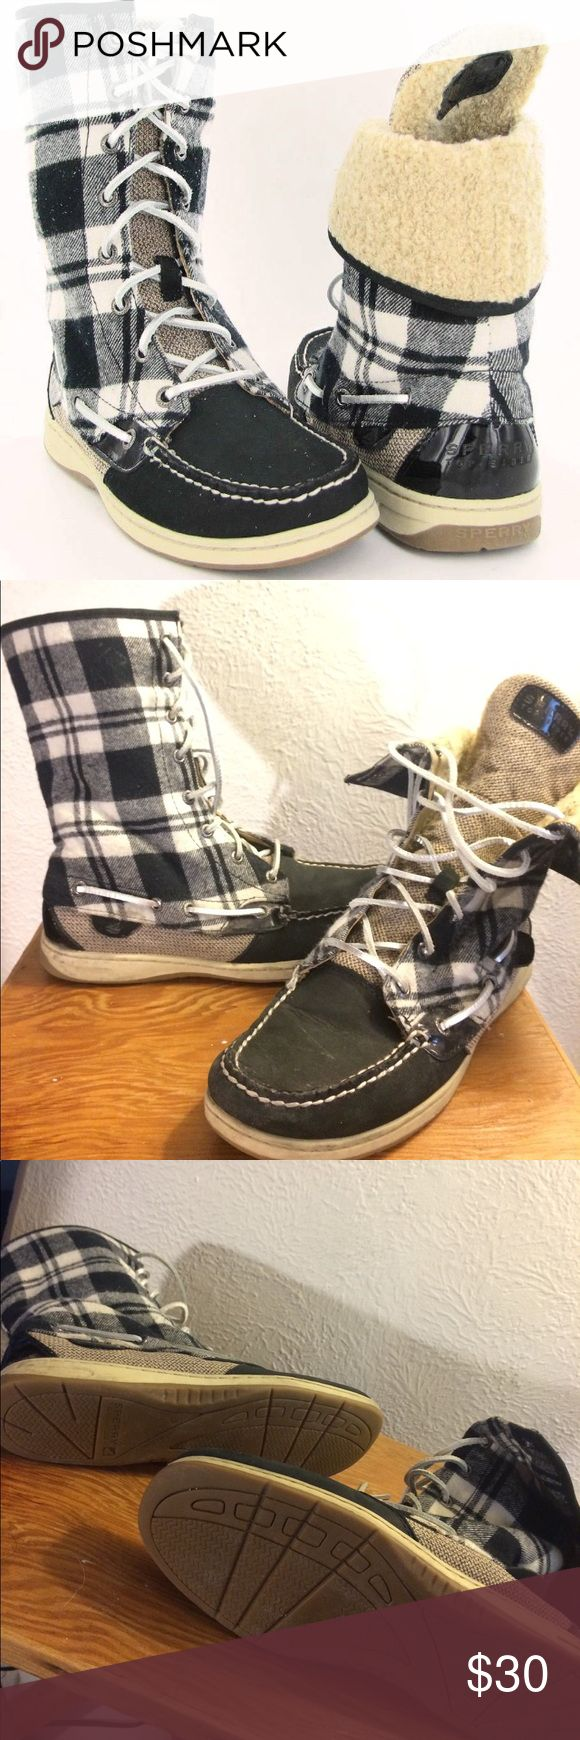 Sperry Top-Sider Ladyfish plaid black Boots Sz 7.5 first photo is a stock photo and the rest are the actual boots for sale. Great condition with light wear...a couple light scuffs and the white along the bottom sole is a little dirty. very cute and stylish for fall & winter ❄️ ☔️ size 7.5 Sperry Shoes Lace Up Boots